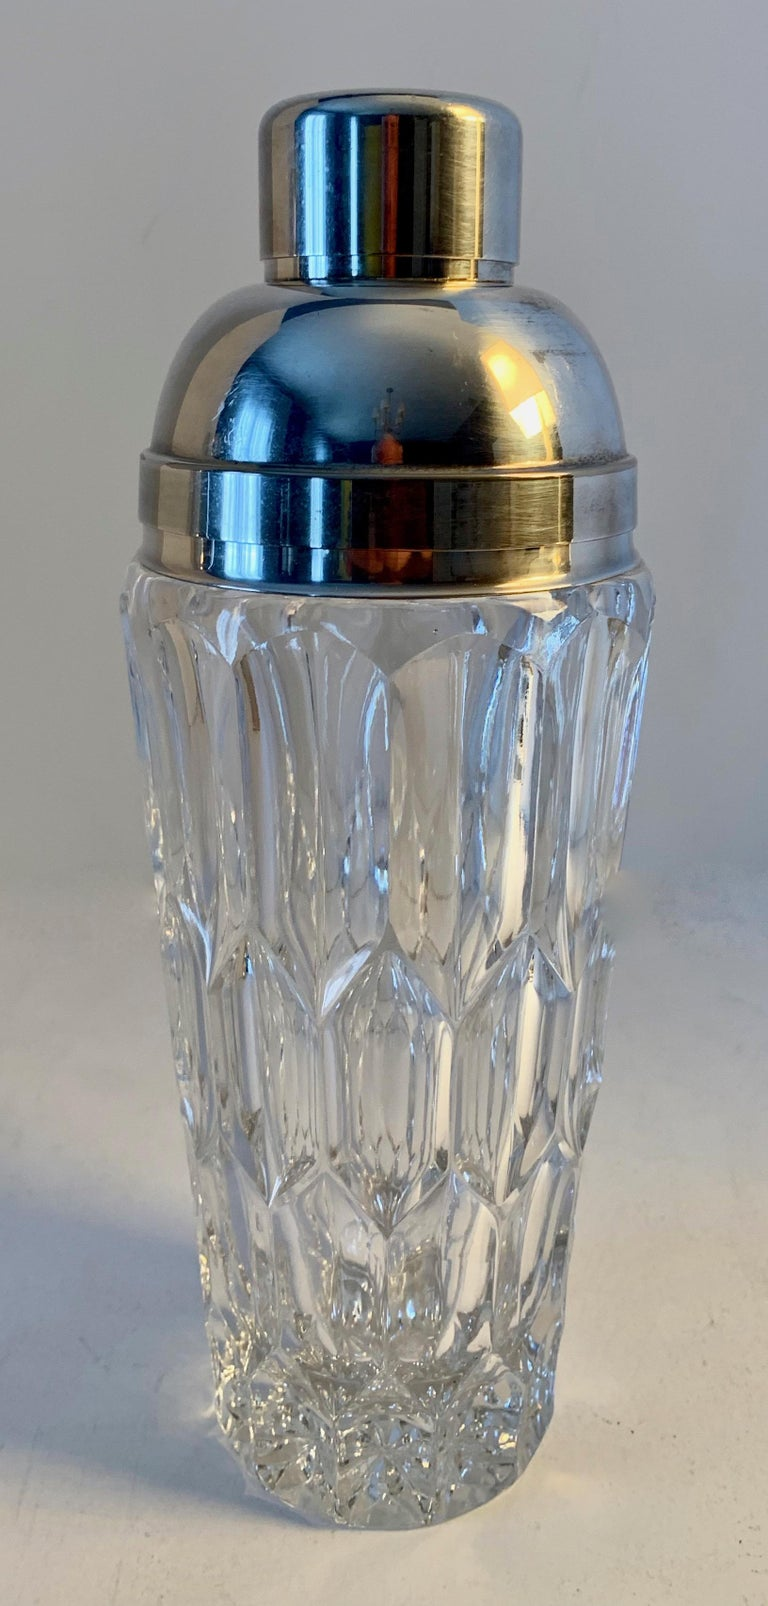 Crystal and silver plate cocktail shaker, a handsome and sophisticated midcentury cocktail shaker well suited for any bar. The straining top is fitted with a cork, perfect for the best bar!